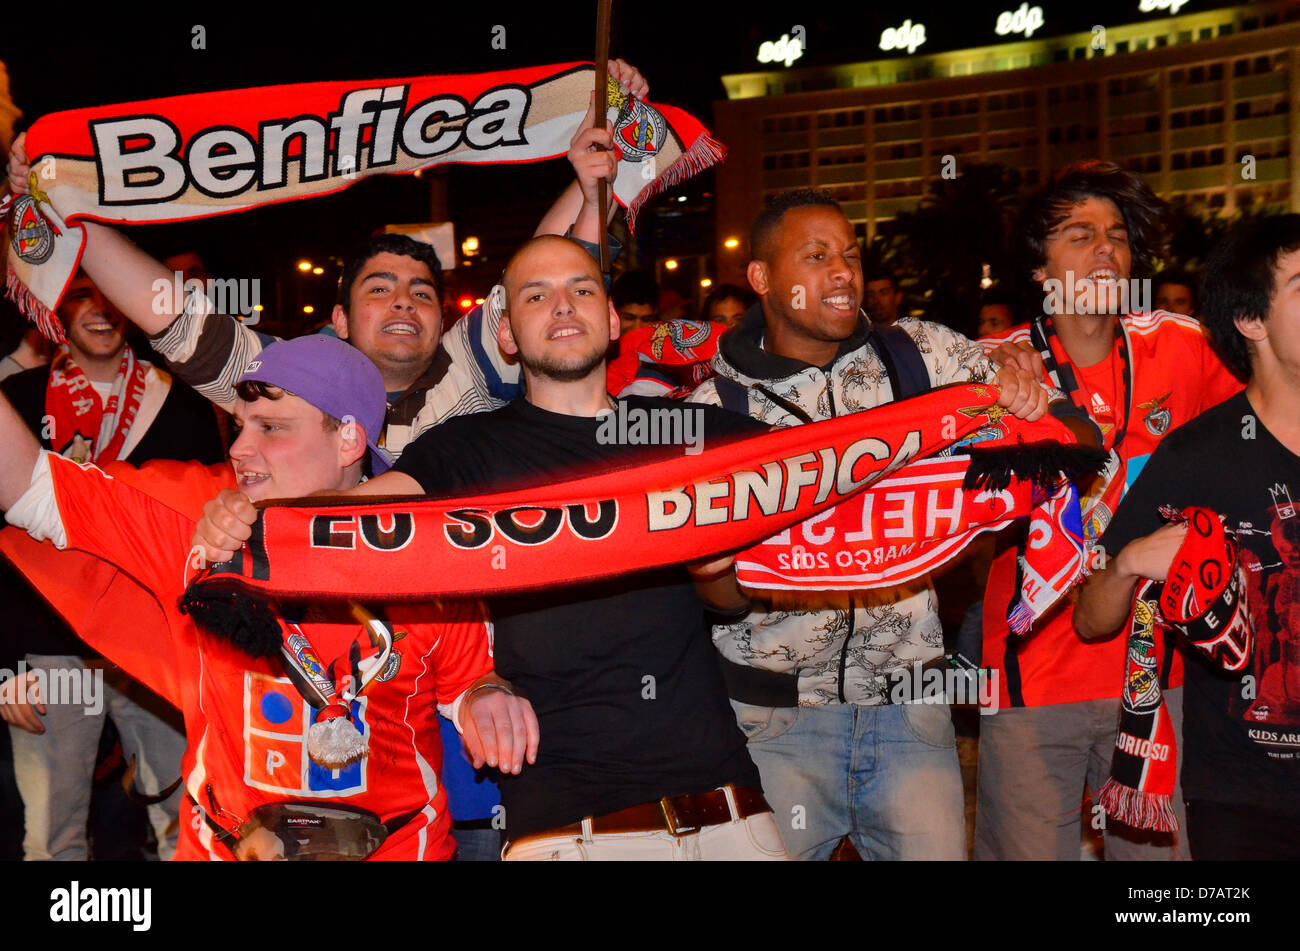 Sport Lisboa Benfica (SLB) Benfica wins 3-1 Fernebache Benfica fans celebrate winning the Marques de Pombal Square, - Stock Image